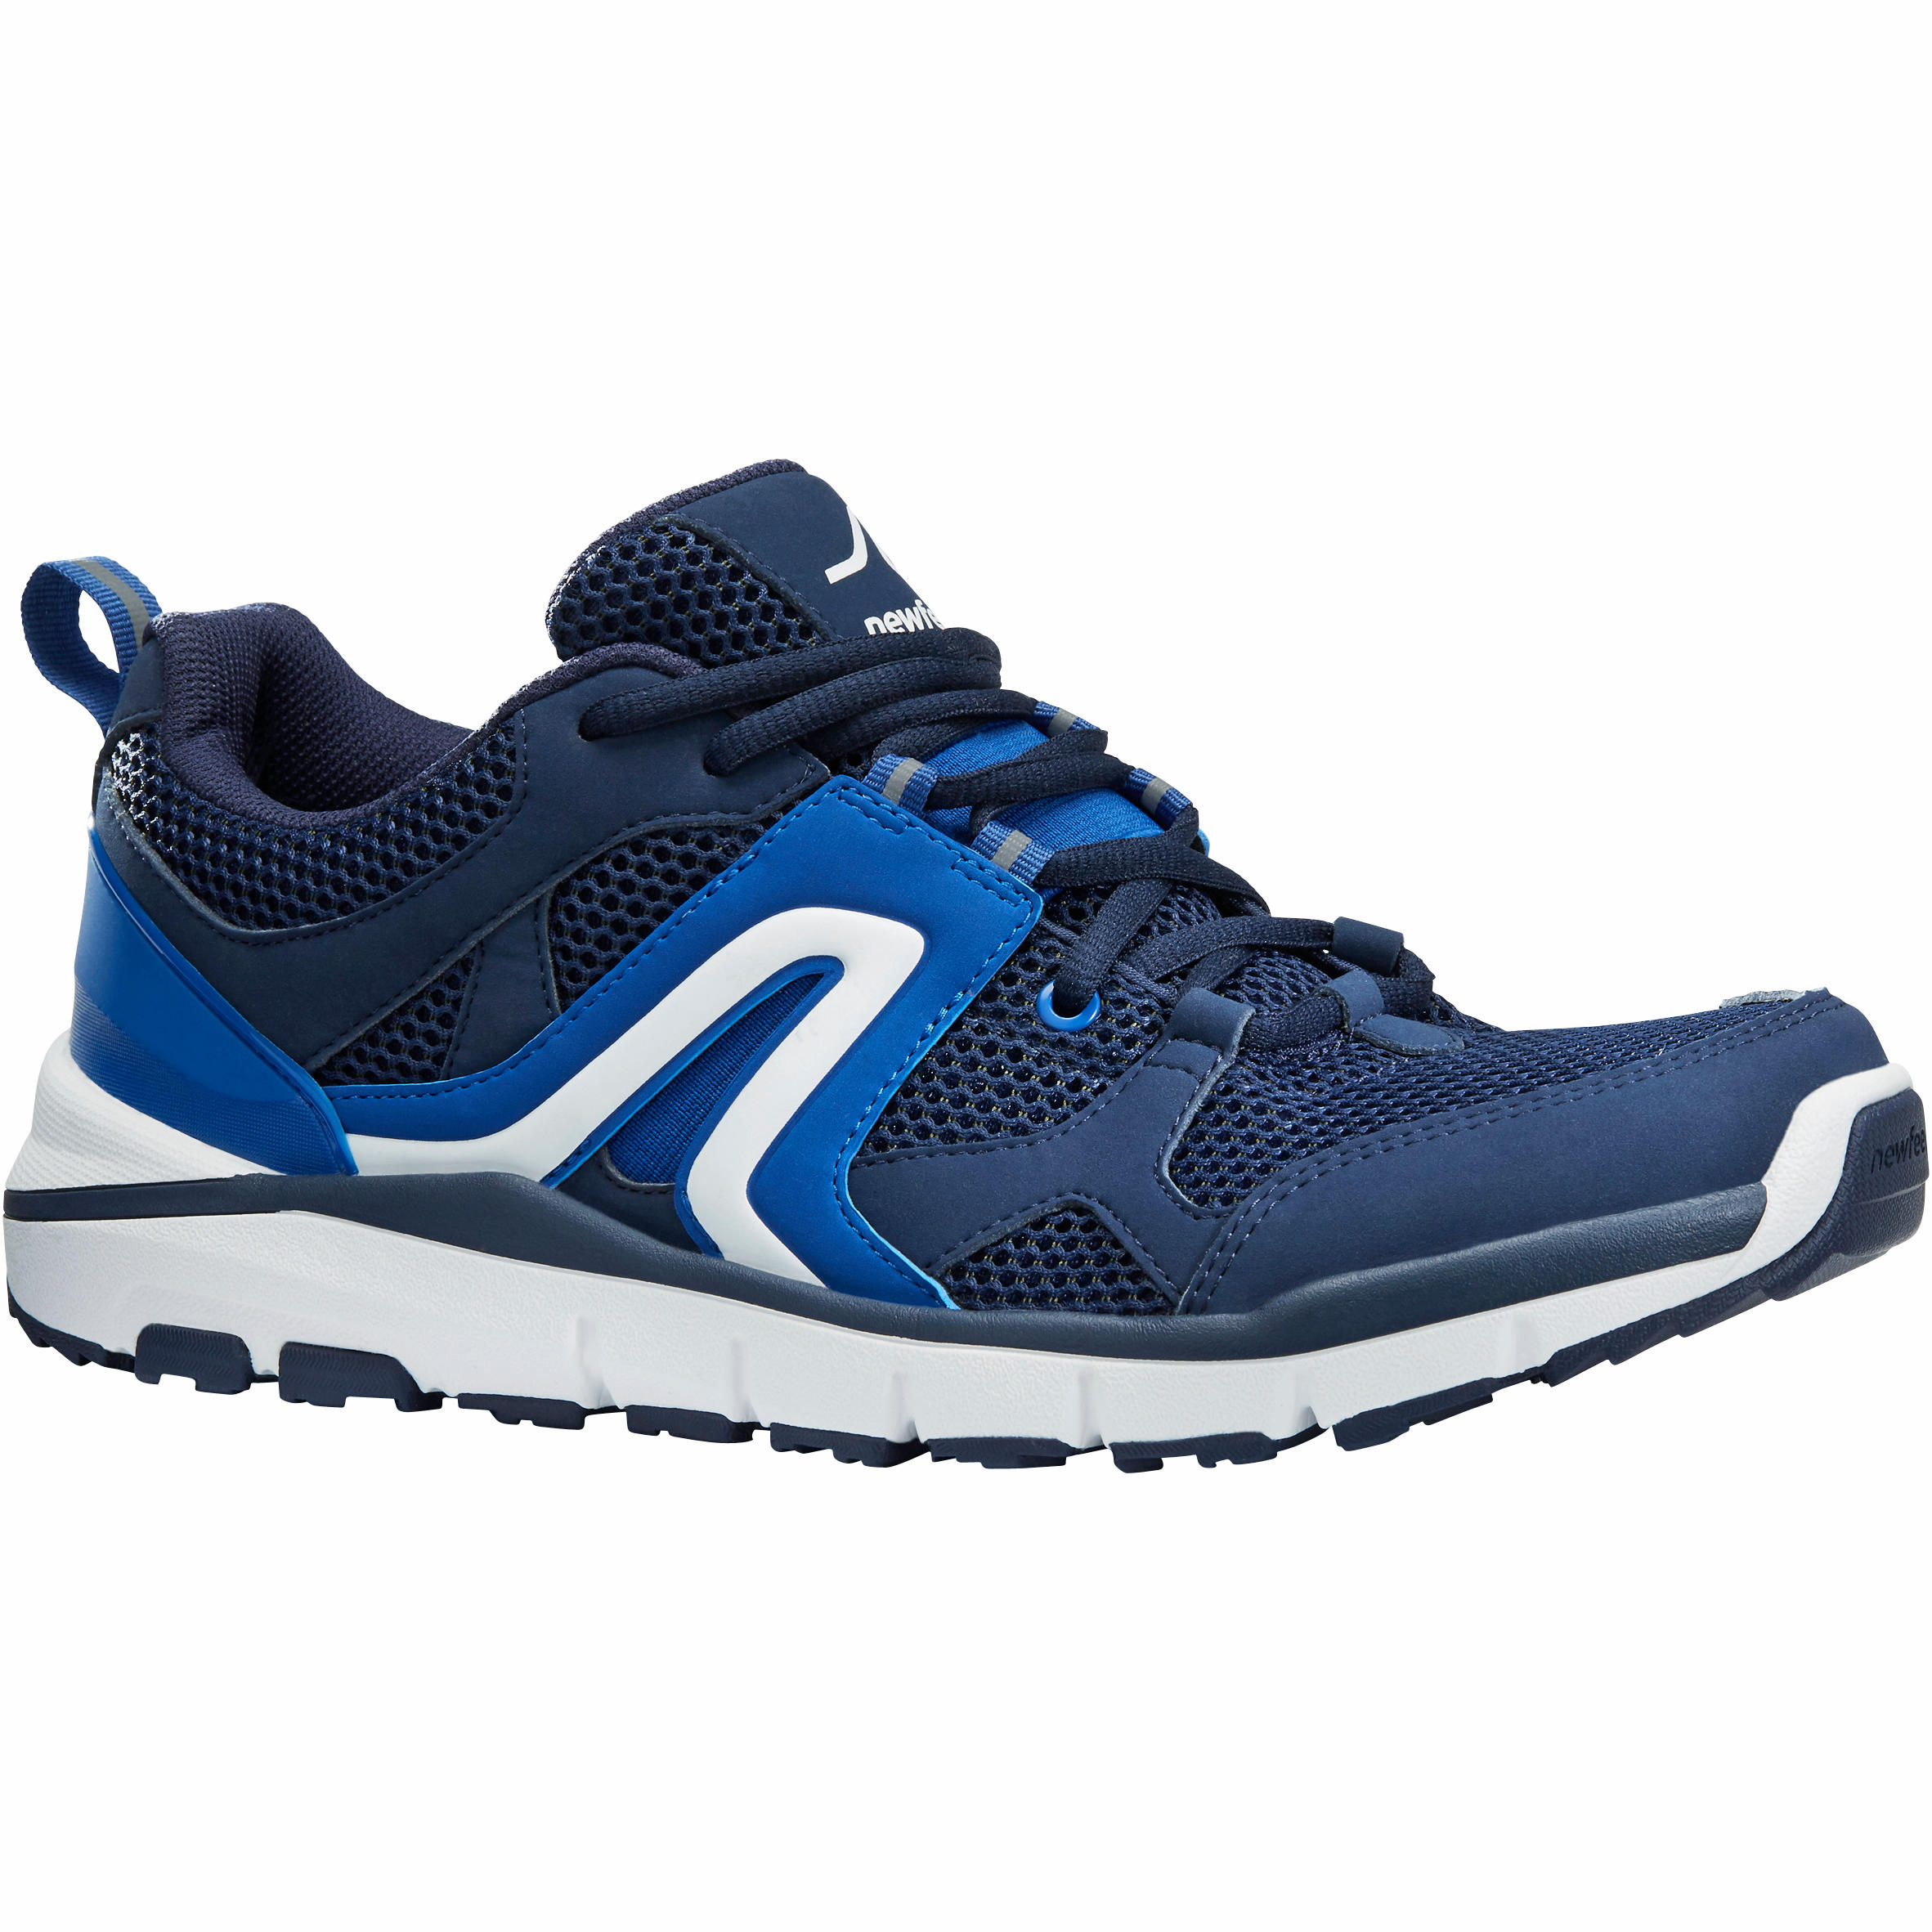 Chaussures marche sportive homme HW 500 Filet marine